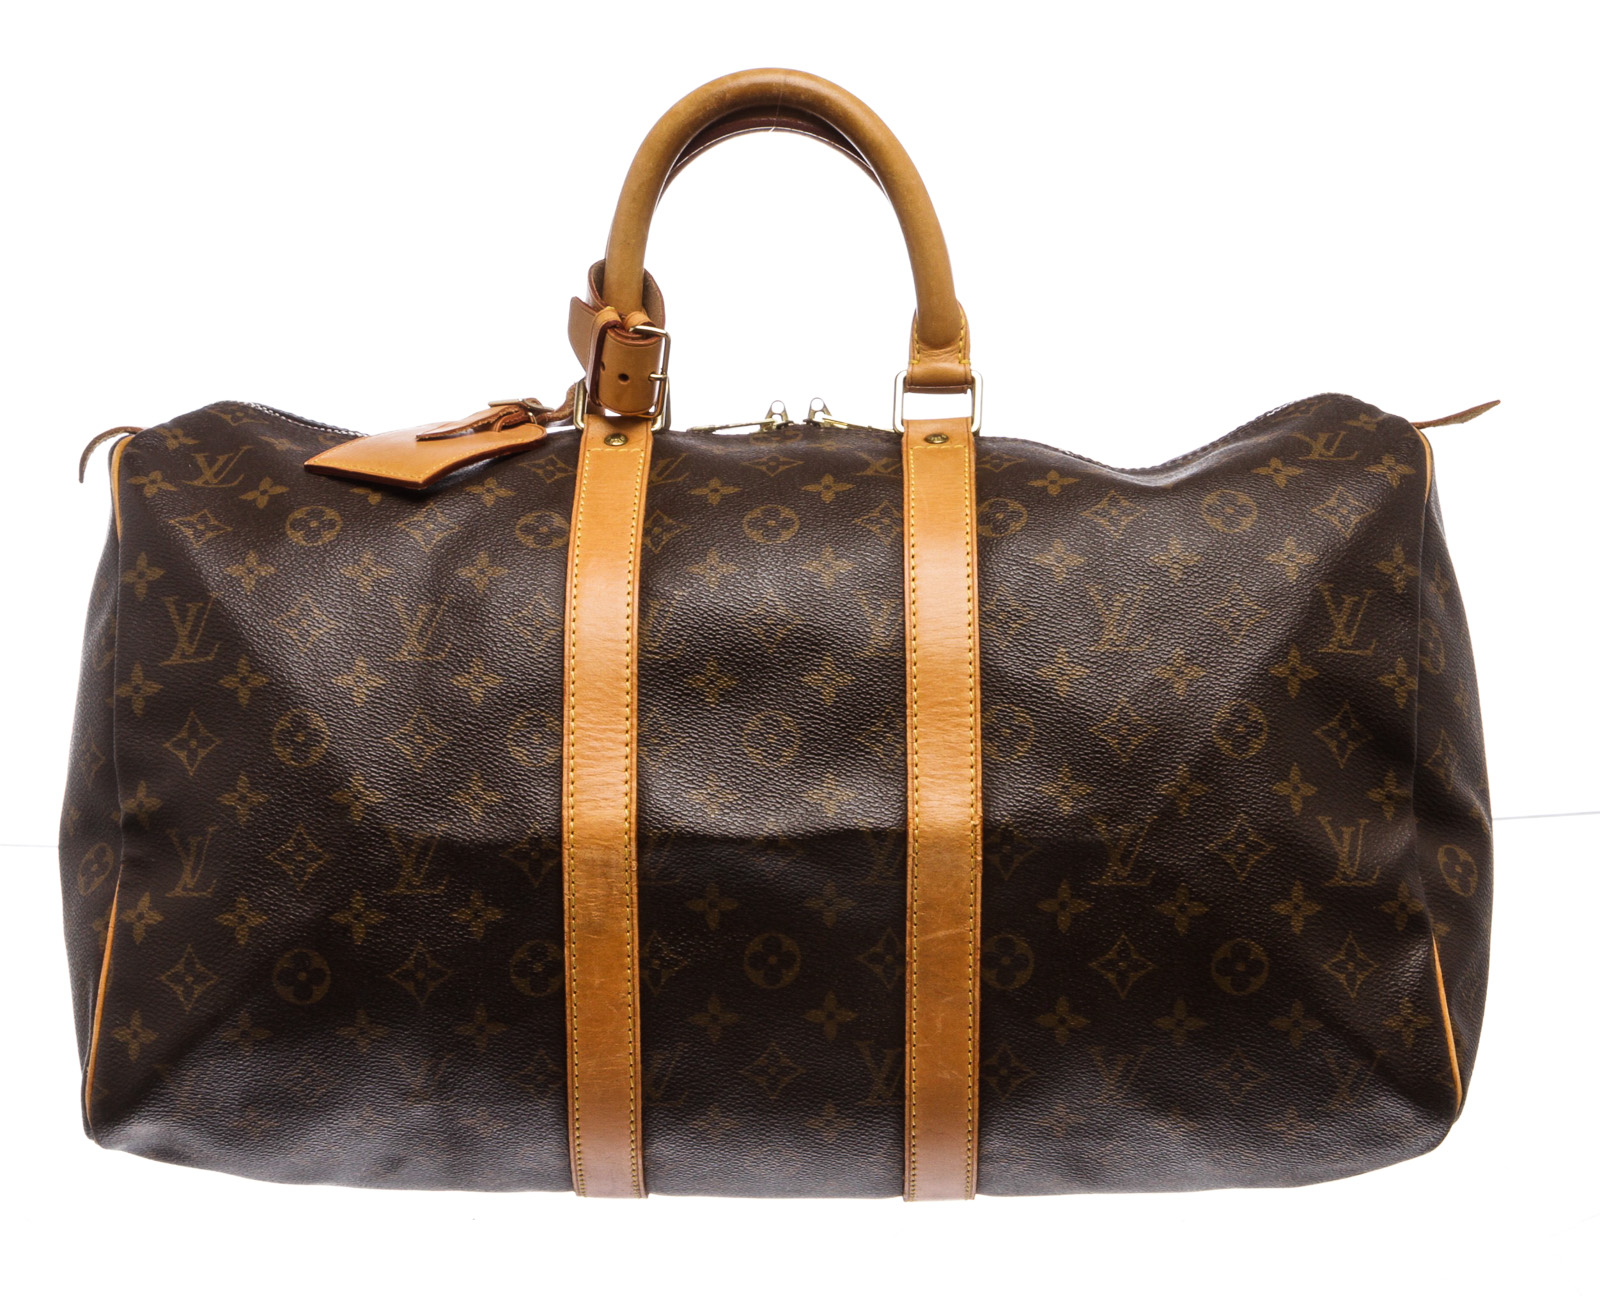 91368ecfded9 Keepall 45 cm Duffle Bag Luggage Louis Vuitton Monogram Canvas Leather